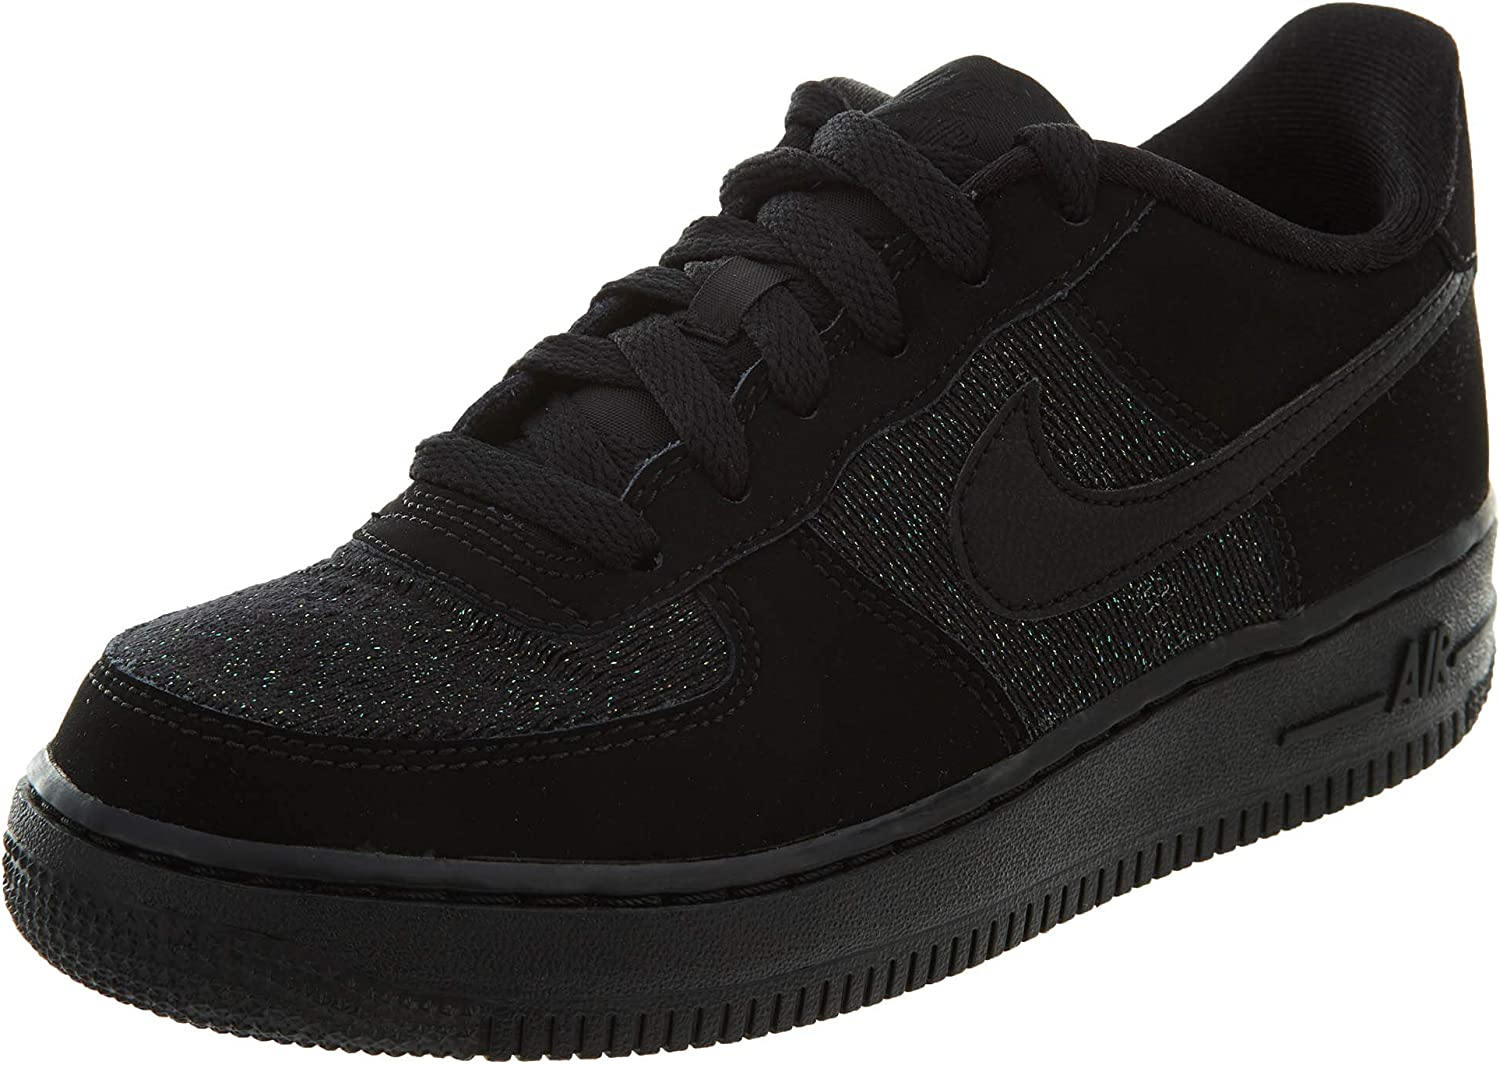 Nike Air Force 1 Lv8 (GS), Chaussures de Fitness Femme